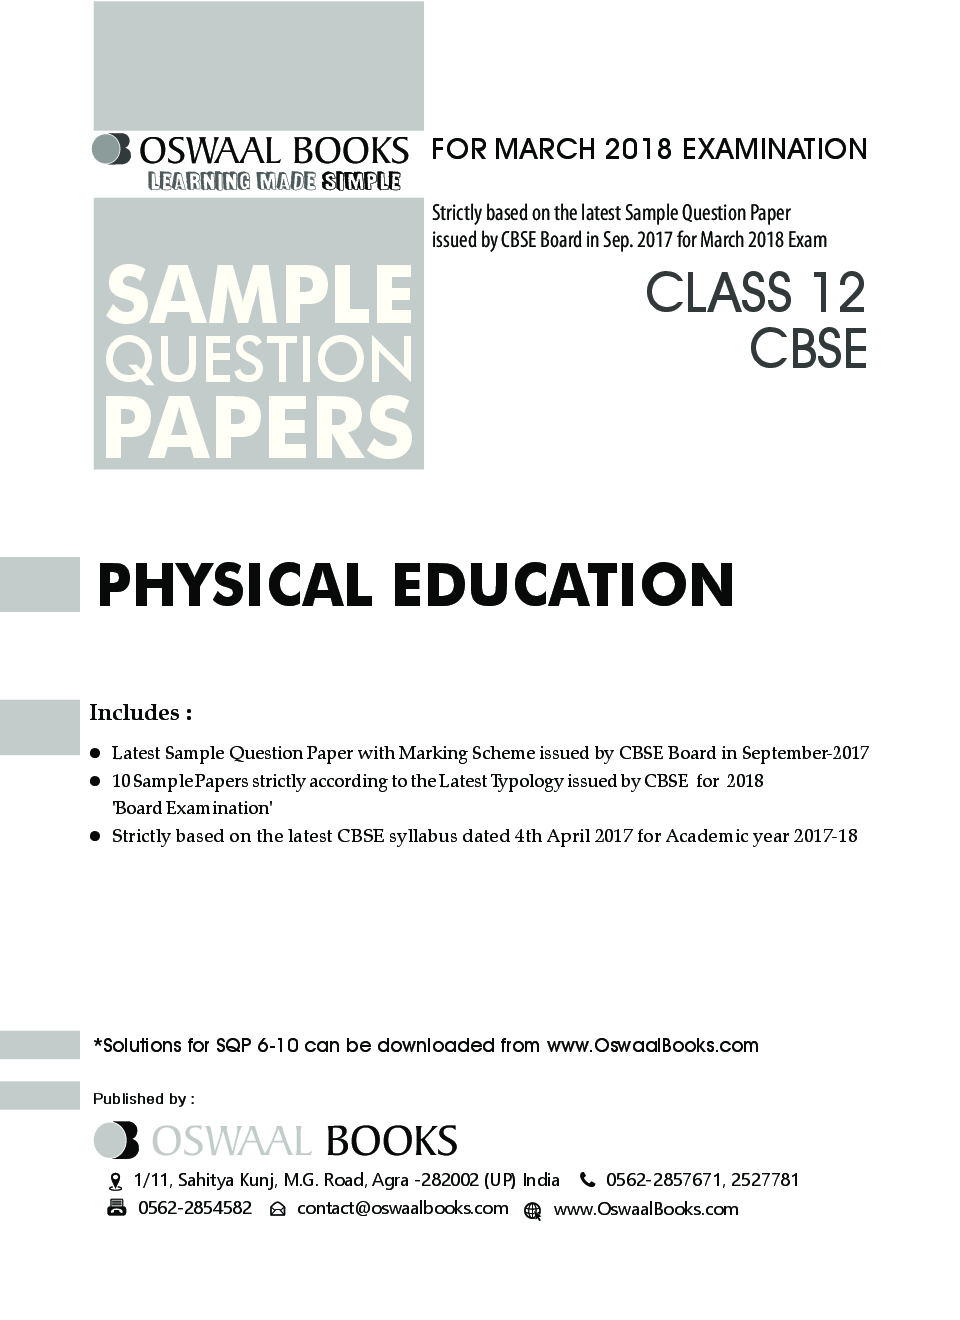 Download oswaal cbse sample question papers for class xii physical oswaal cbse sample question papers for class xii physical education mar 2018 exam by panel of experts malvernweather Images